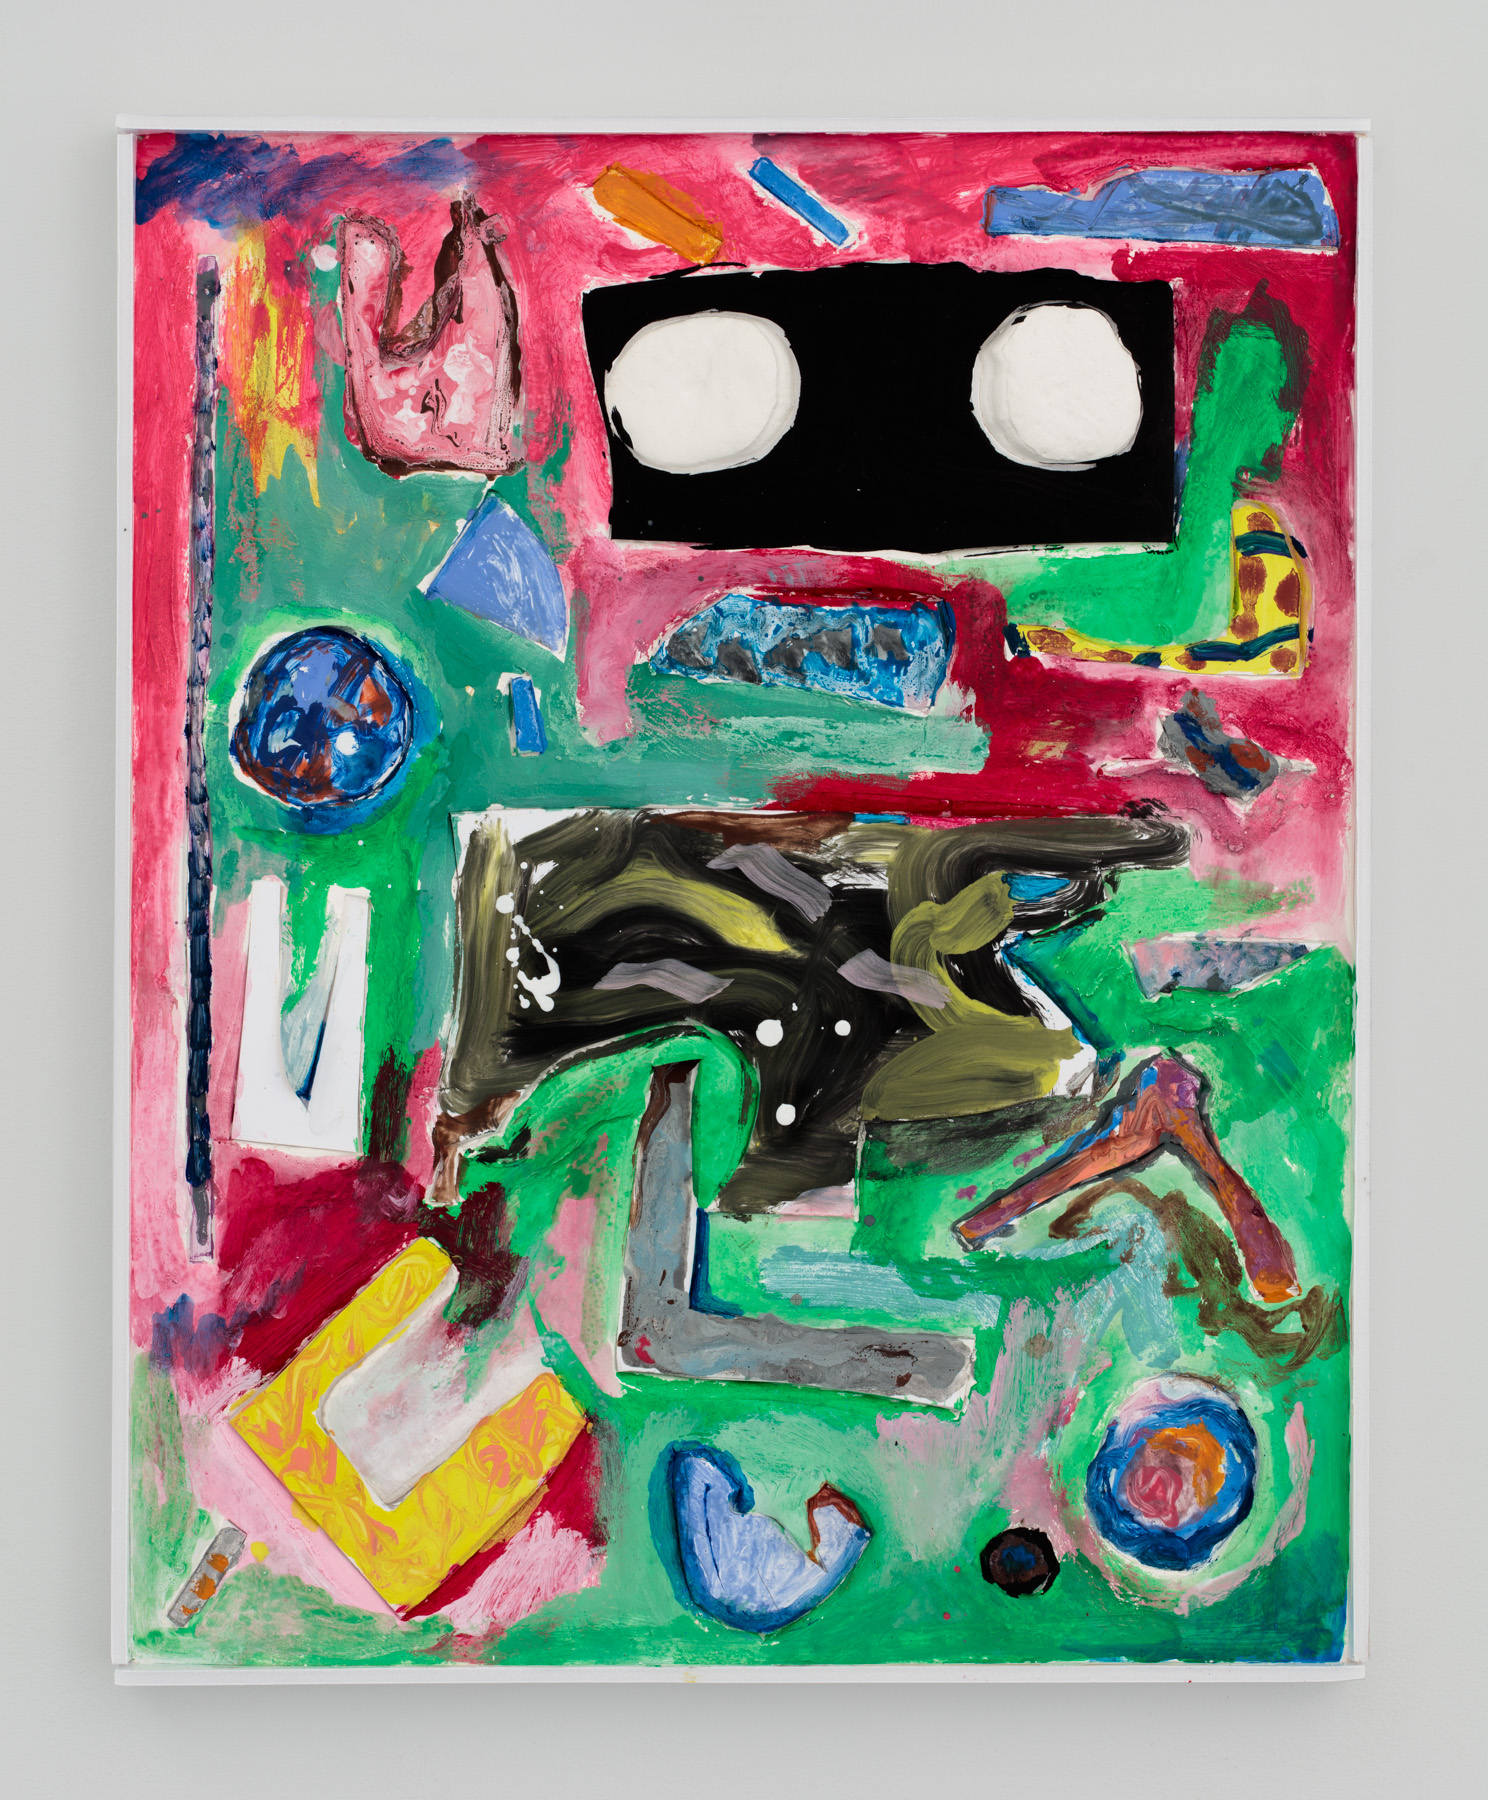 Untitled  20 inches x 16 inches  Oil, acrylic, enamel, foamcore, plaster on panel  2015